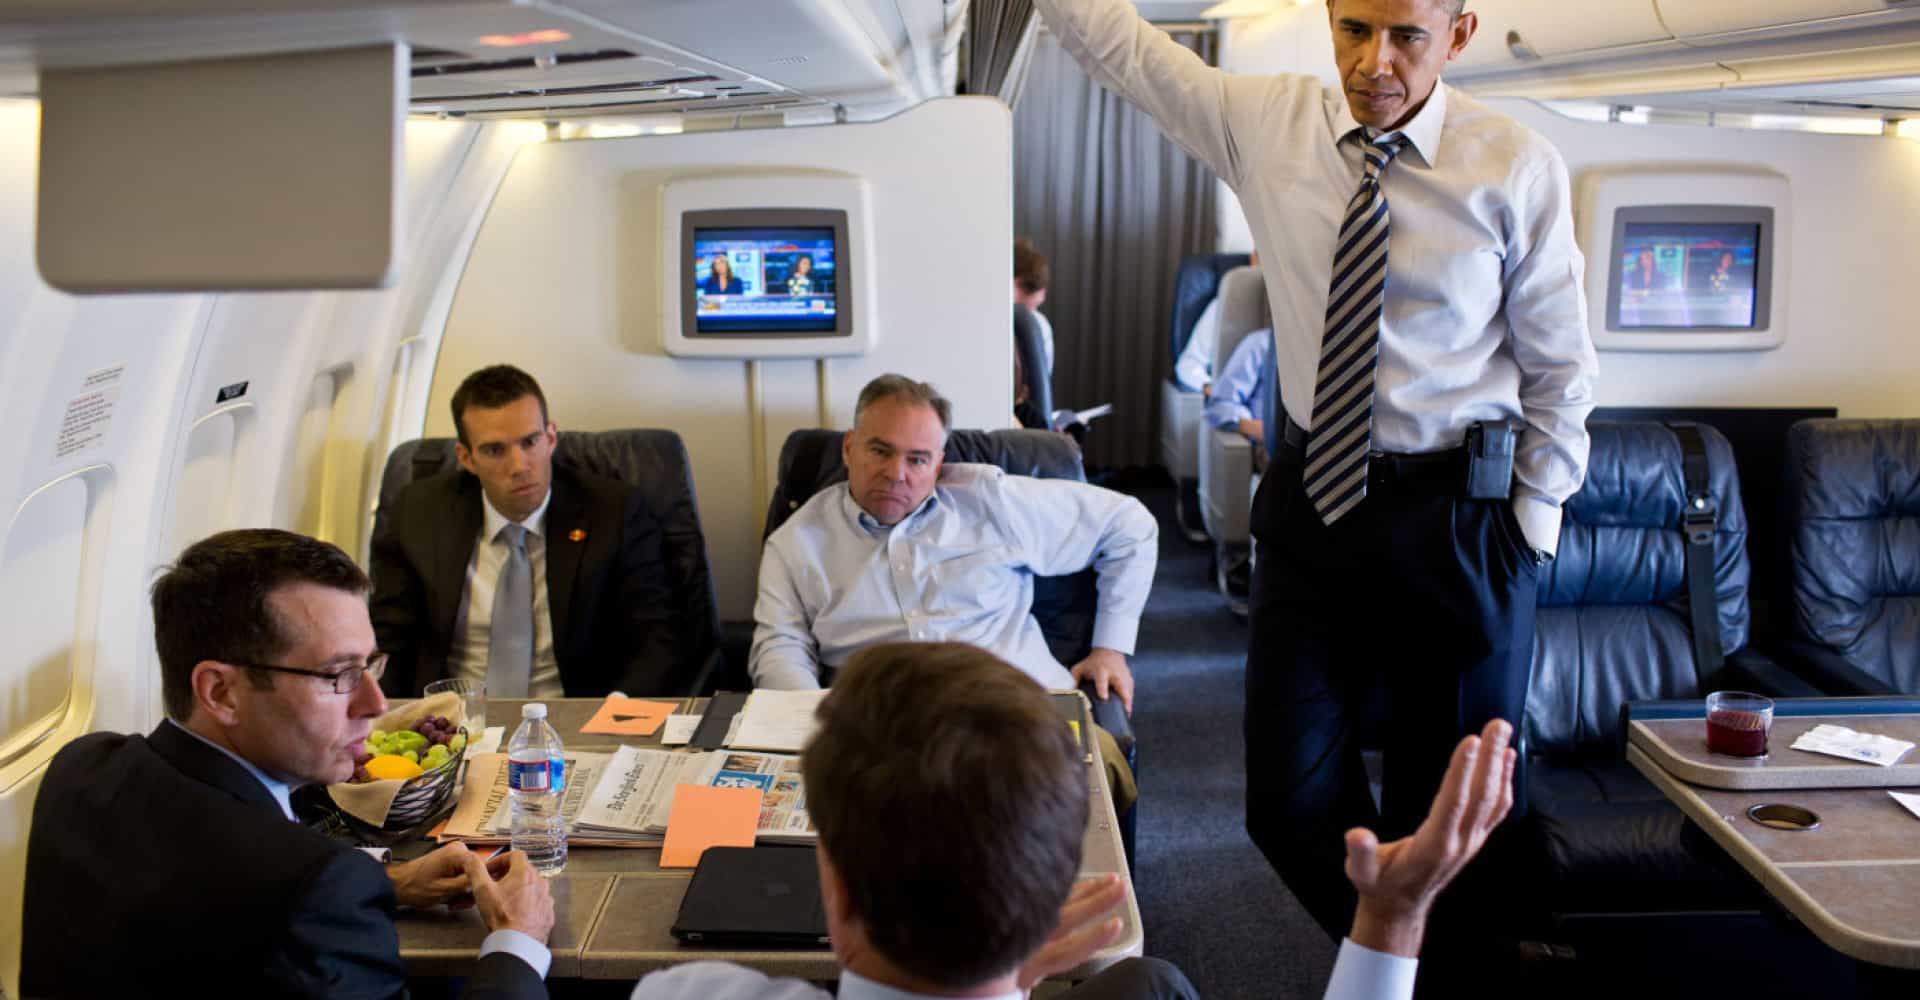 Strange and impressive lesser-known facts about Air Force One